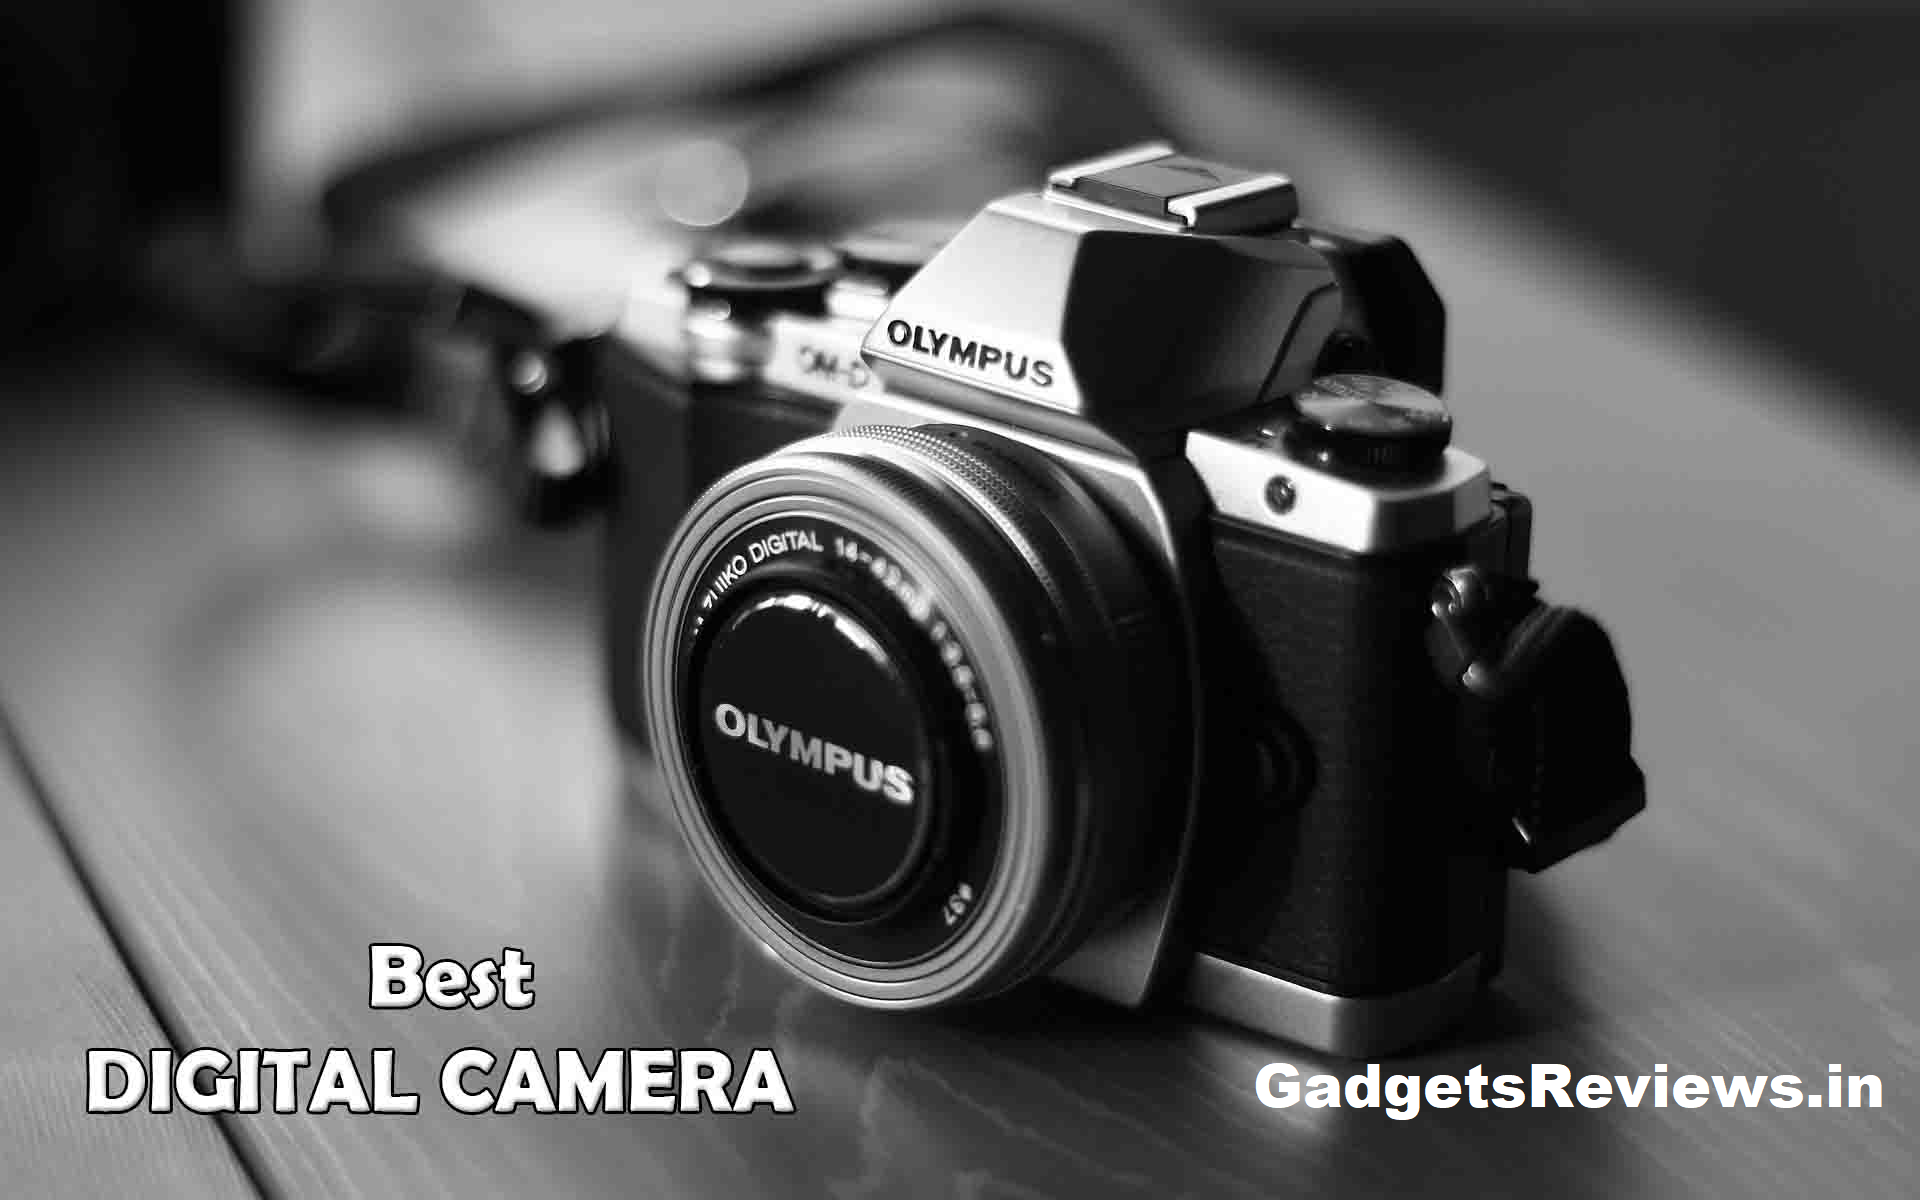 Digital camera, top 5 camera under 10000